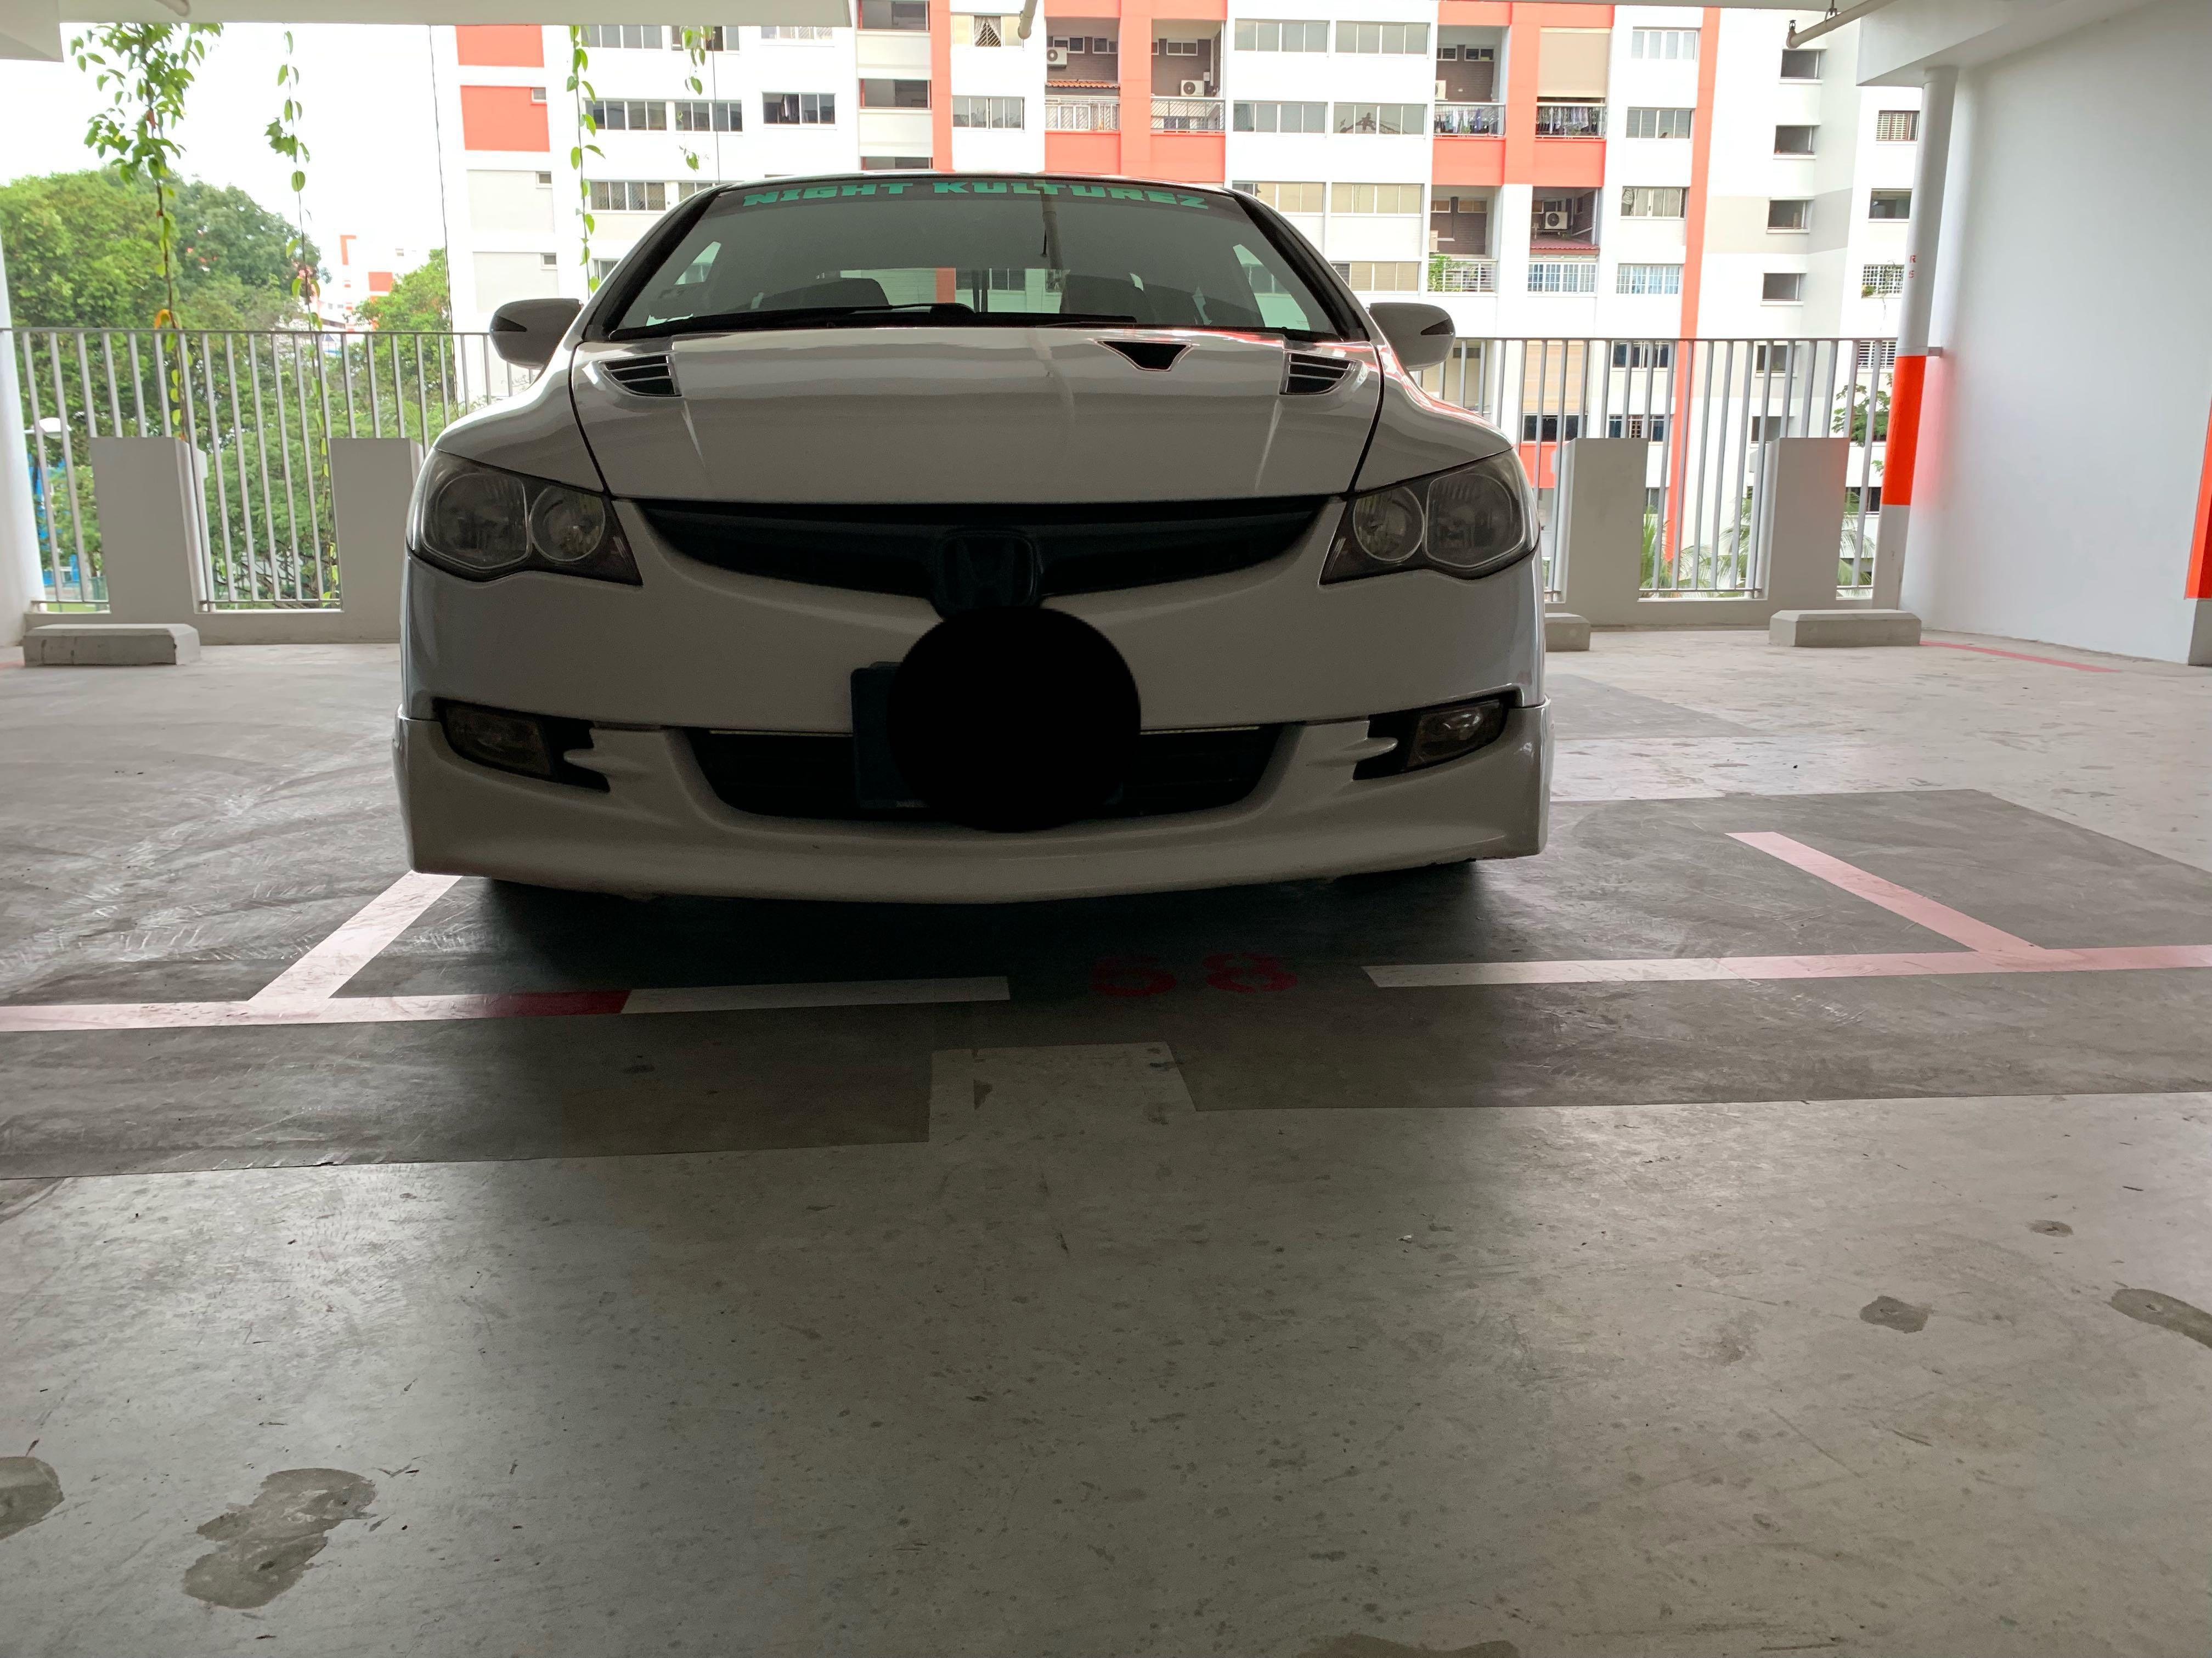 Honda Civic Fd1 Fd2 Fd4 Bumper And Mugen Lips Car Accessories Accessories On Carousell